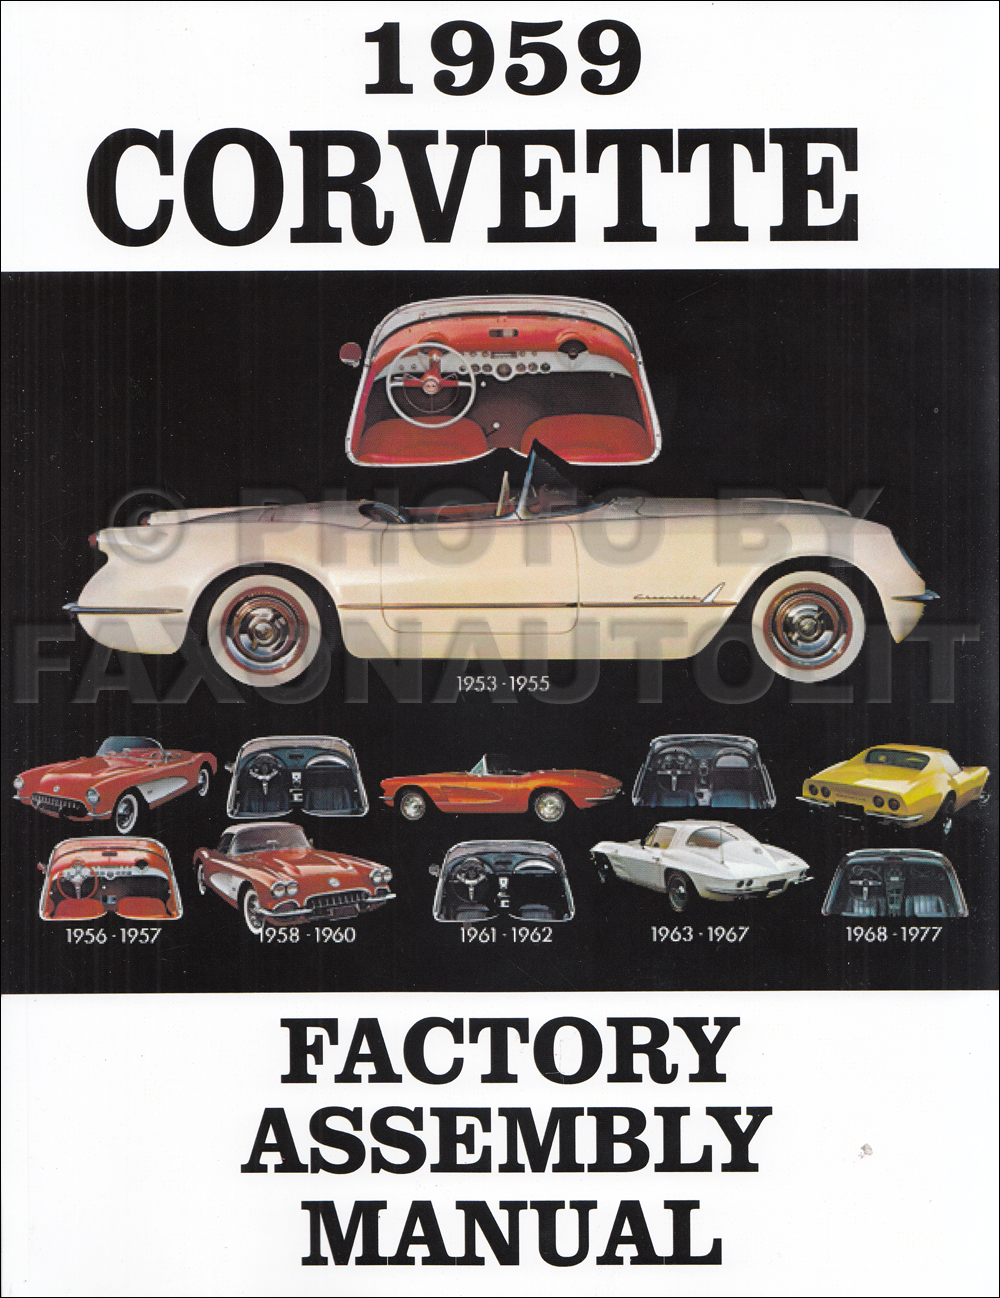 1957 1962 Chevrolet Corvette Rochester Fuel Injection Repair Shop Autronic Eye Wiring Diagram For 1953 1959 Factory Assembly Manual Reprint 2600